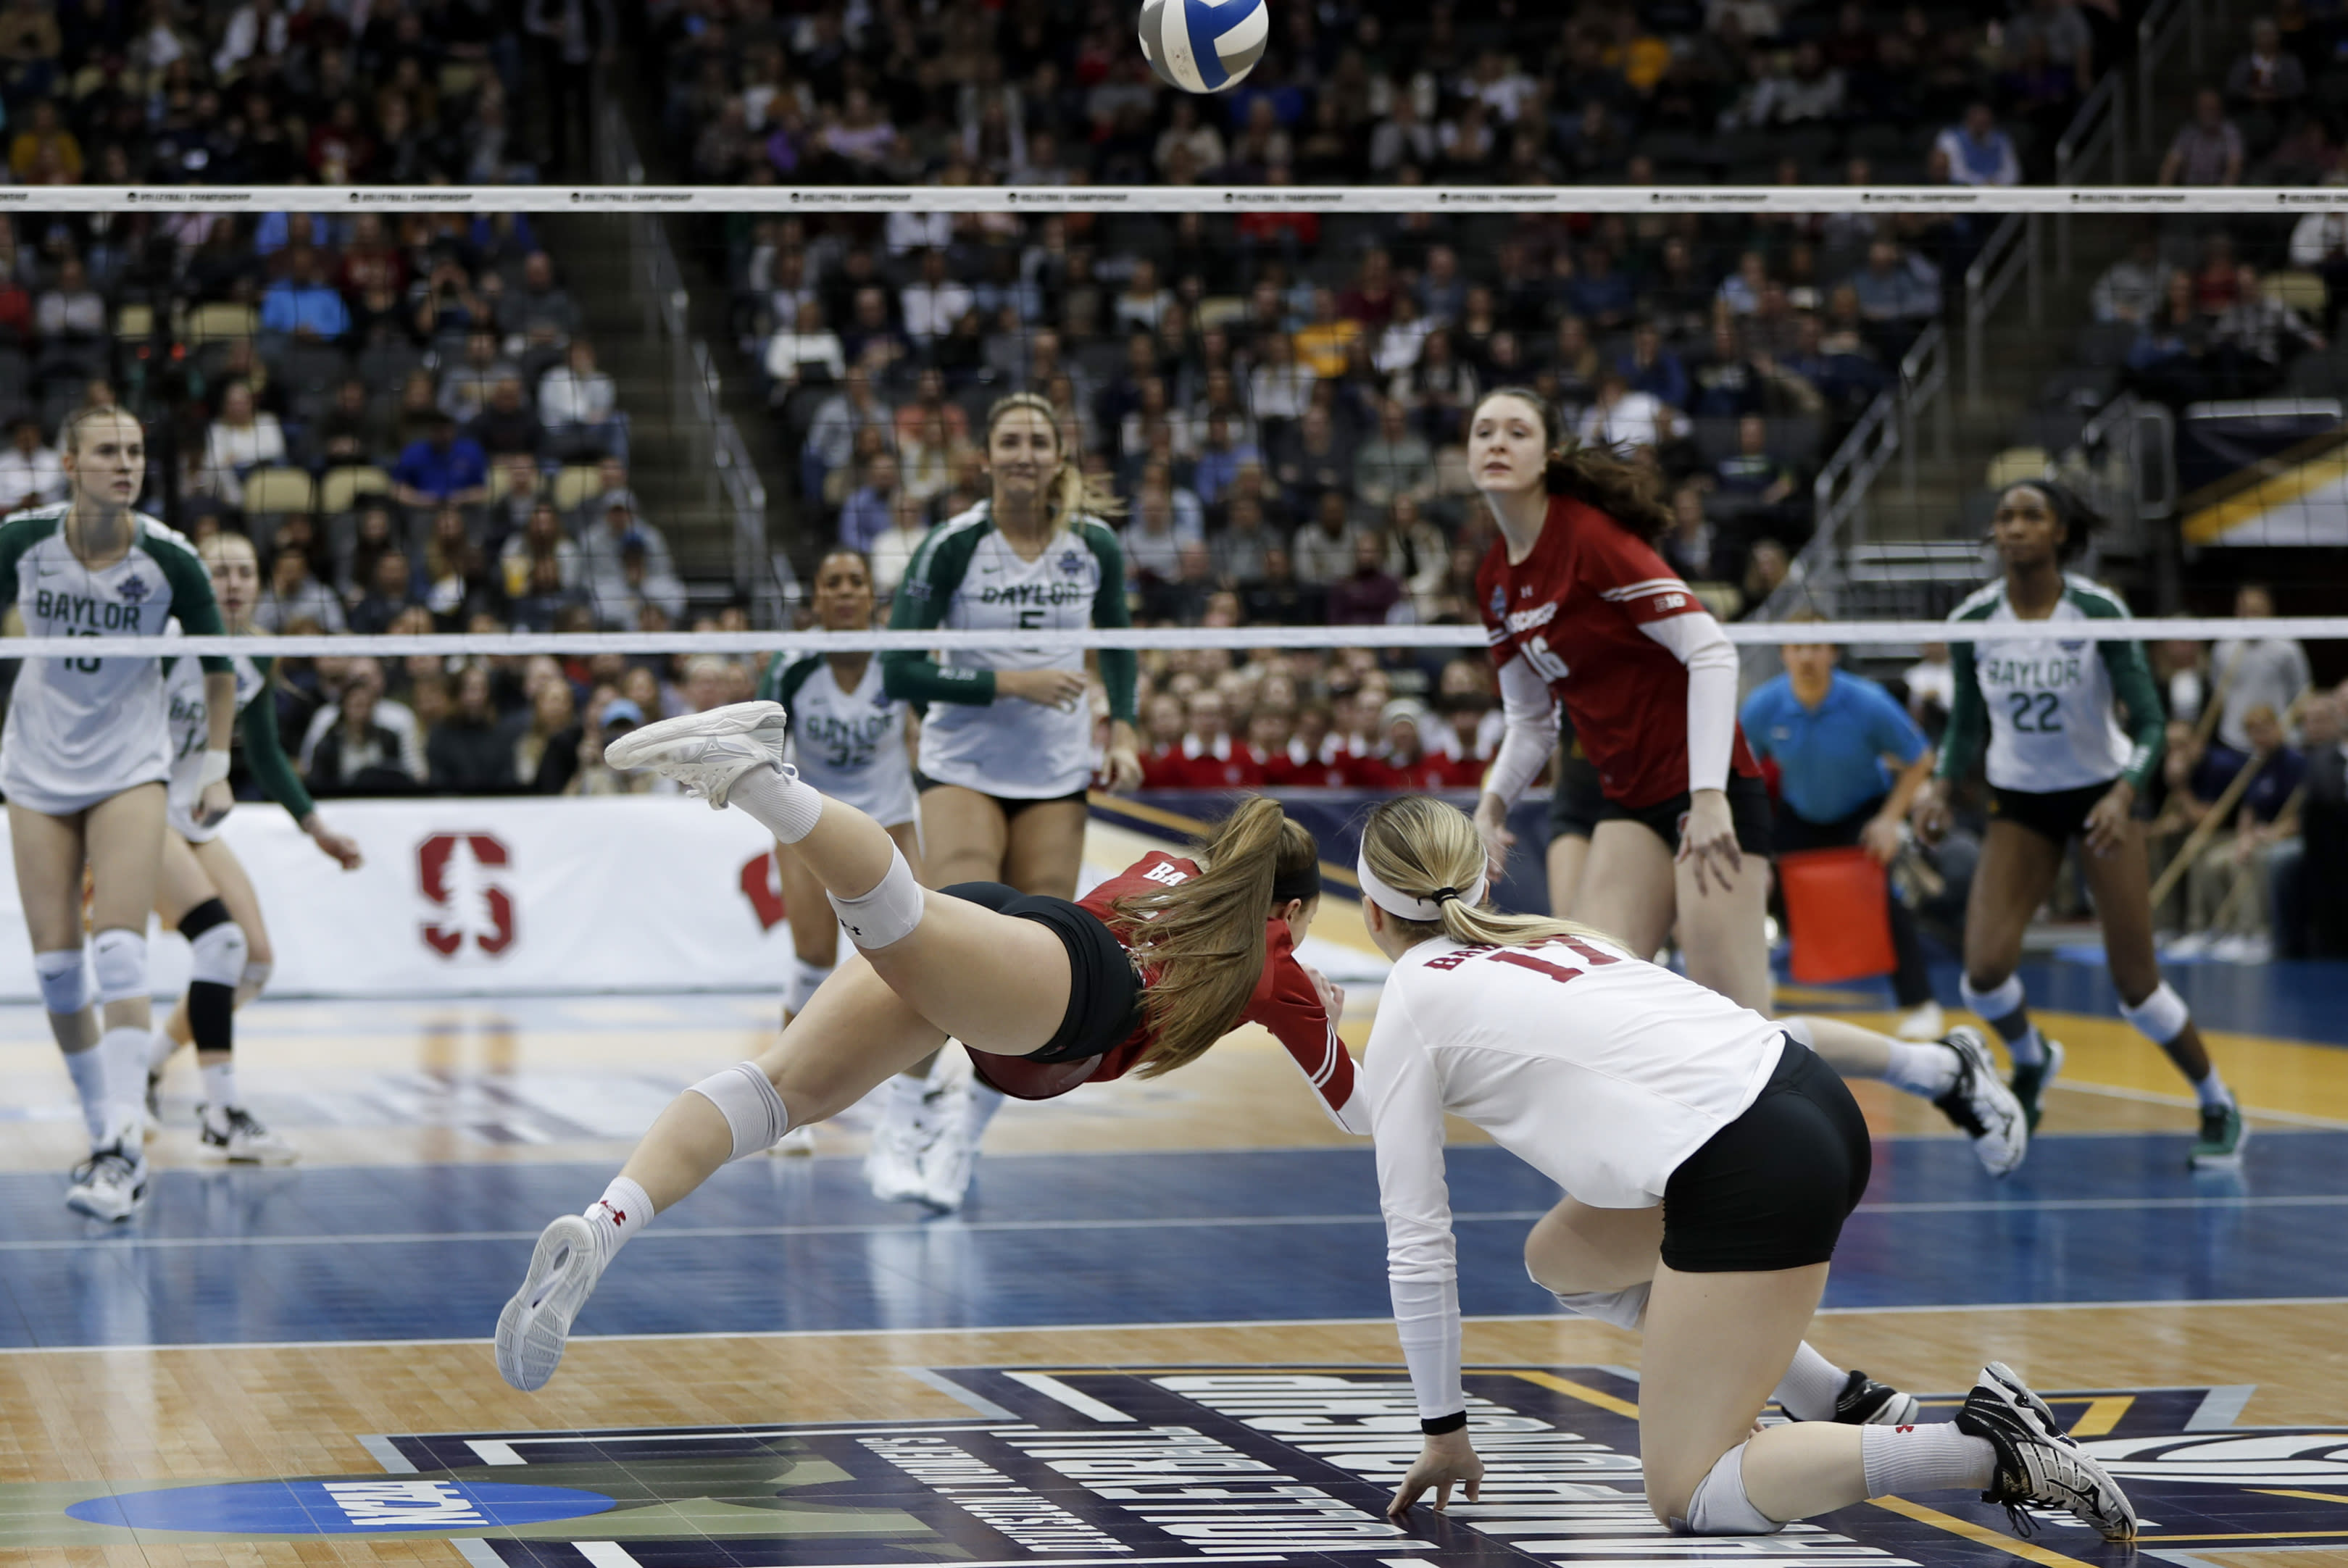 Wisconsin falls to Stanford in NCAA women's volleyball championship